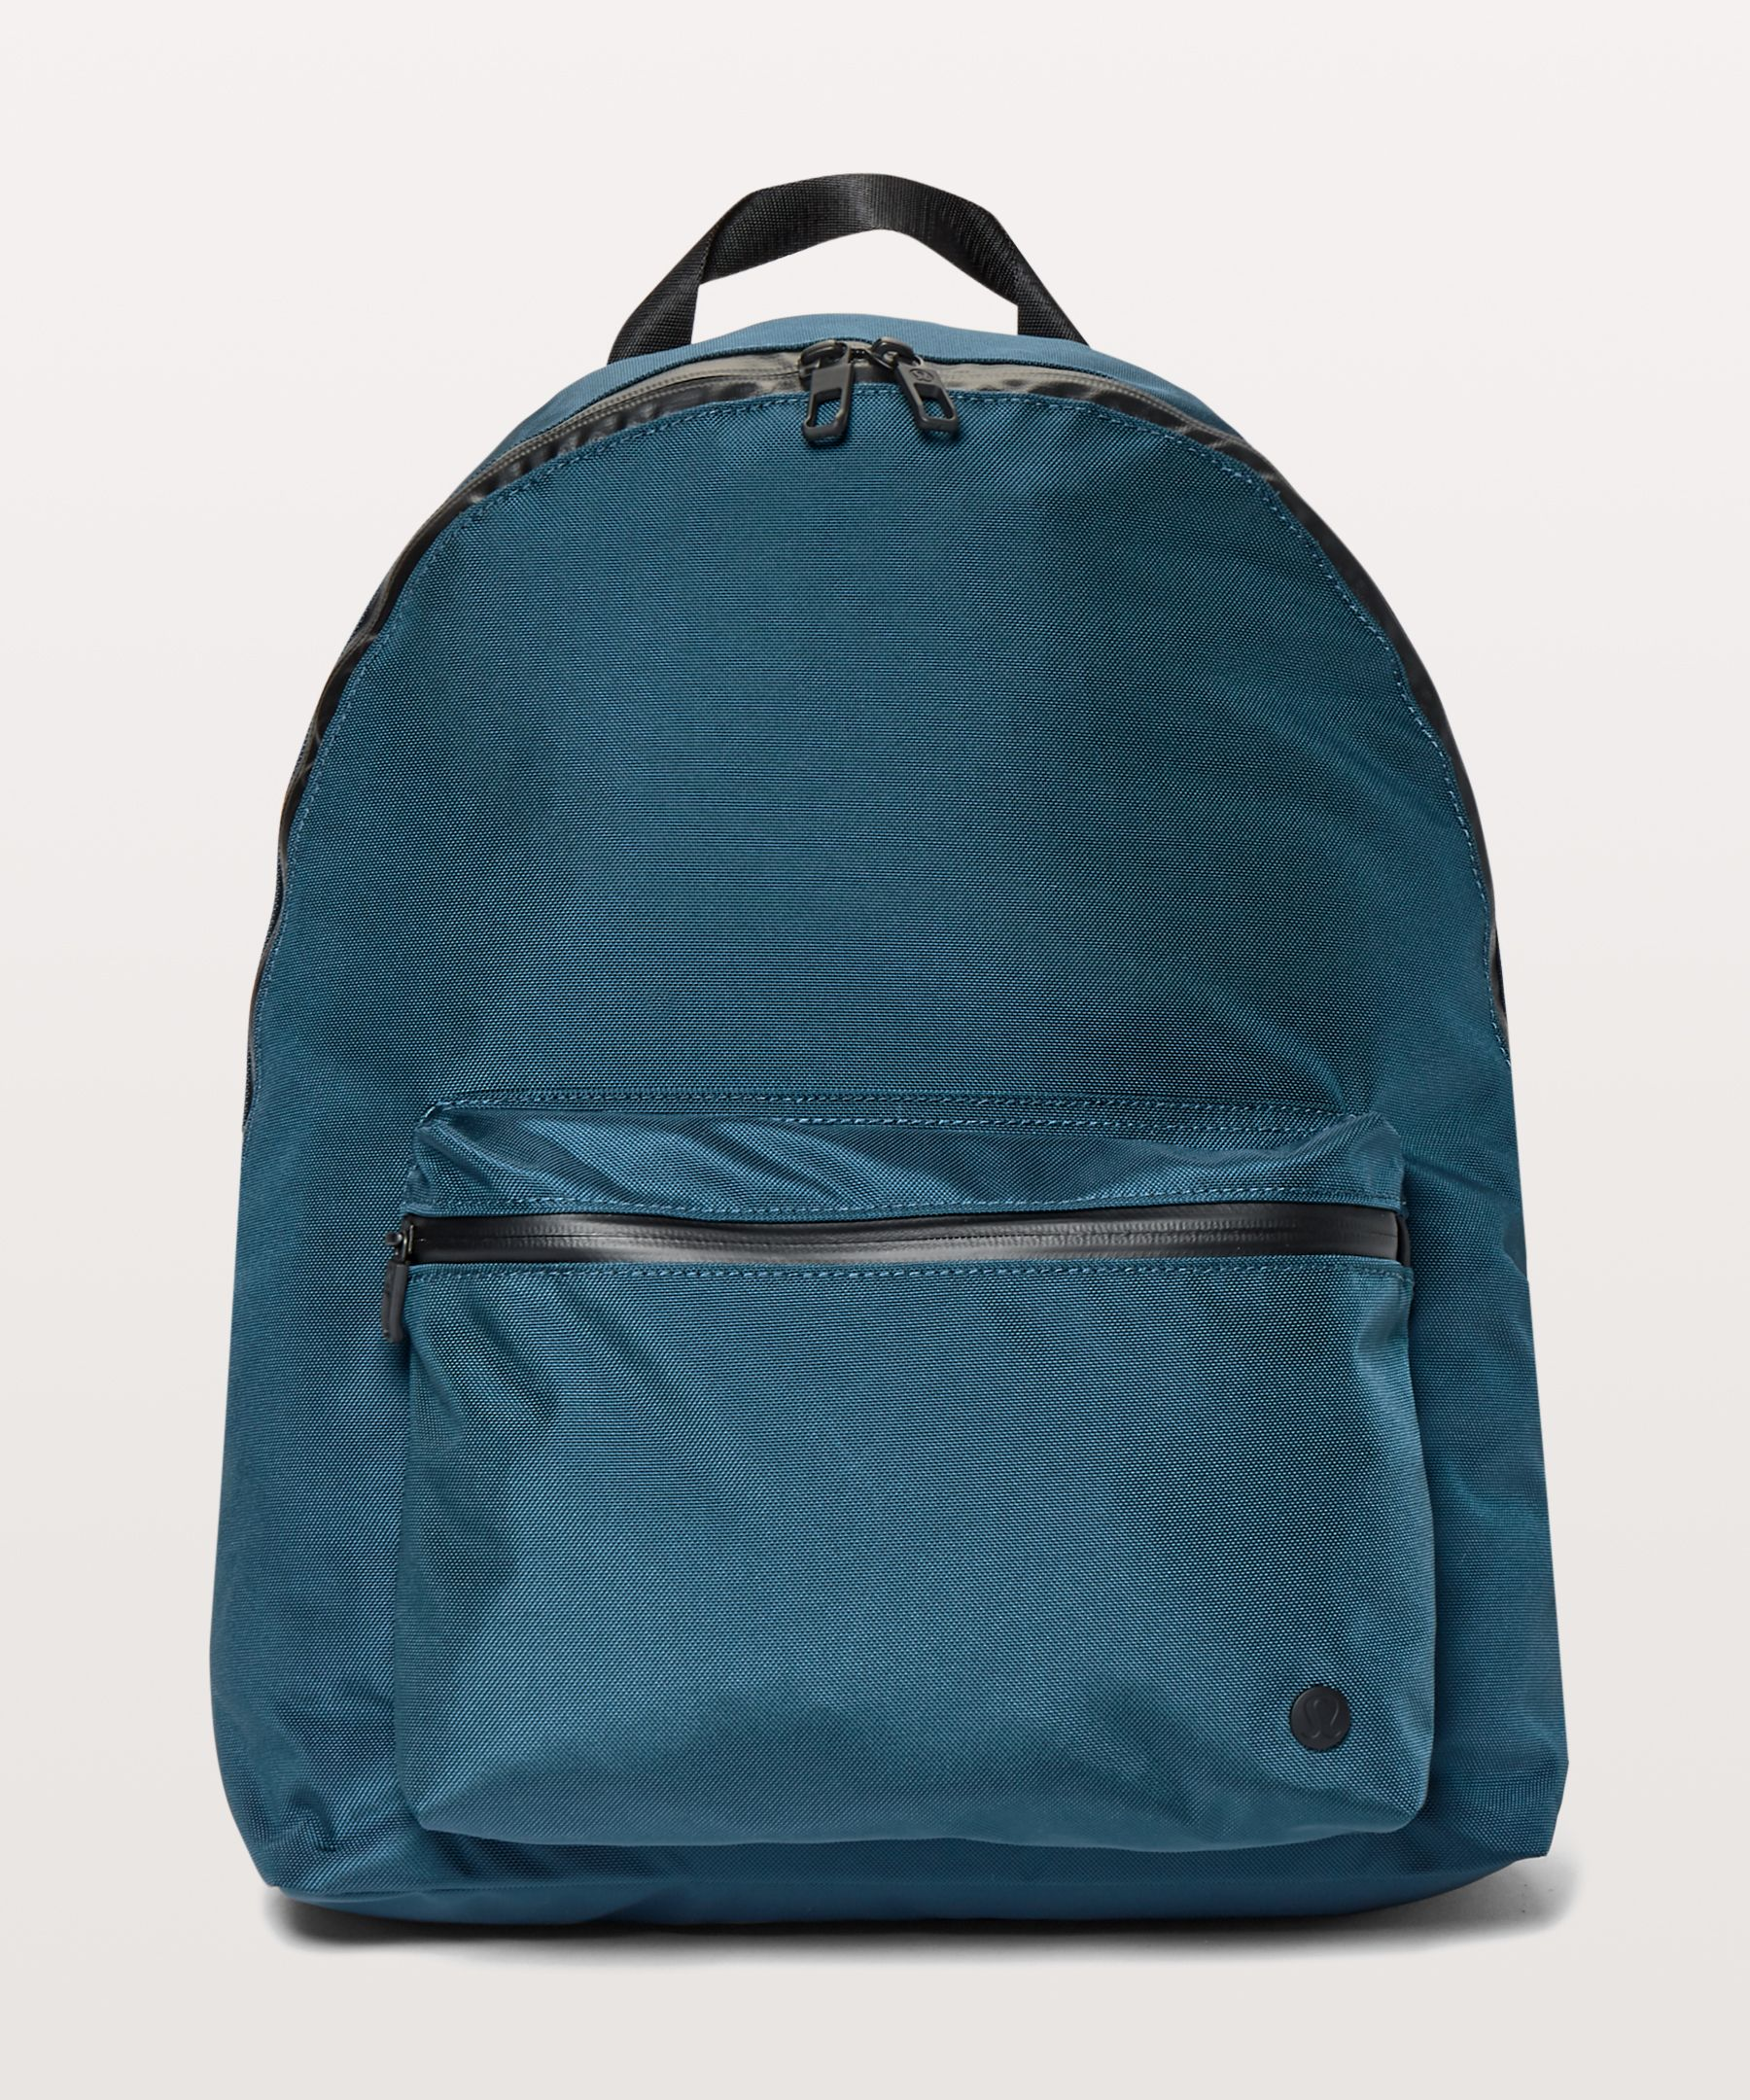 Mainstay Backpack 22L New | Tuggl